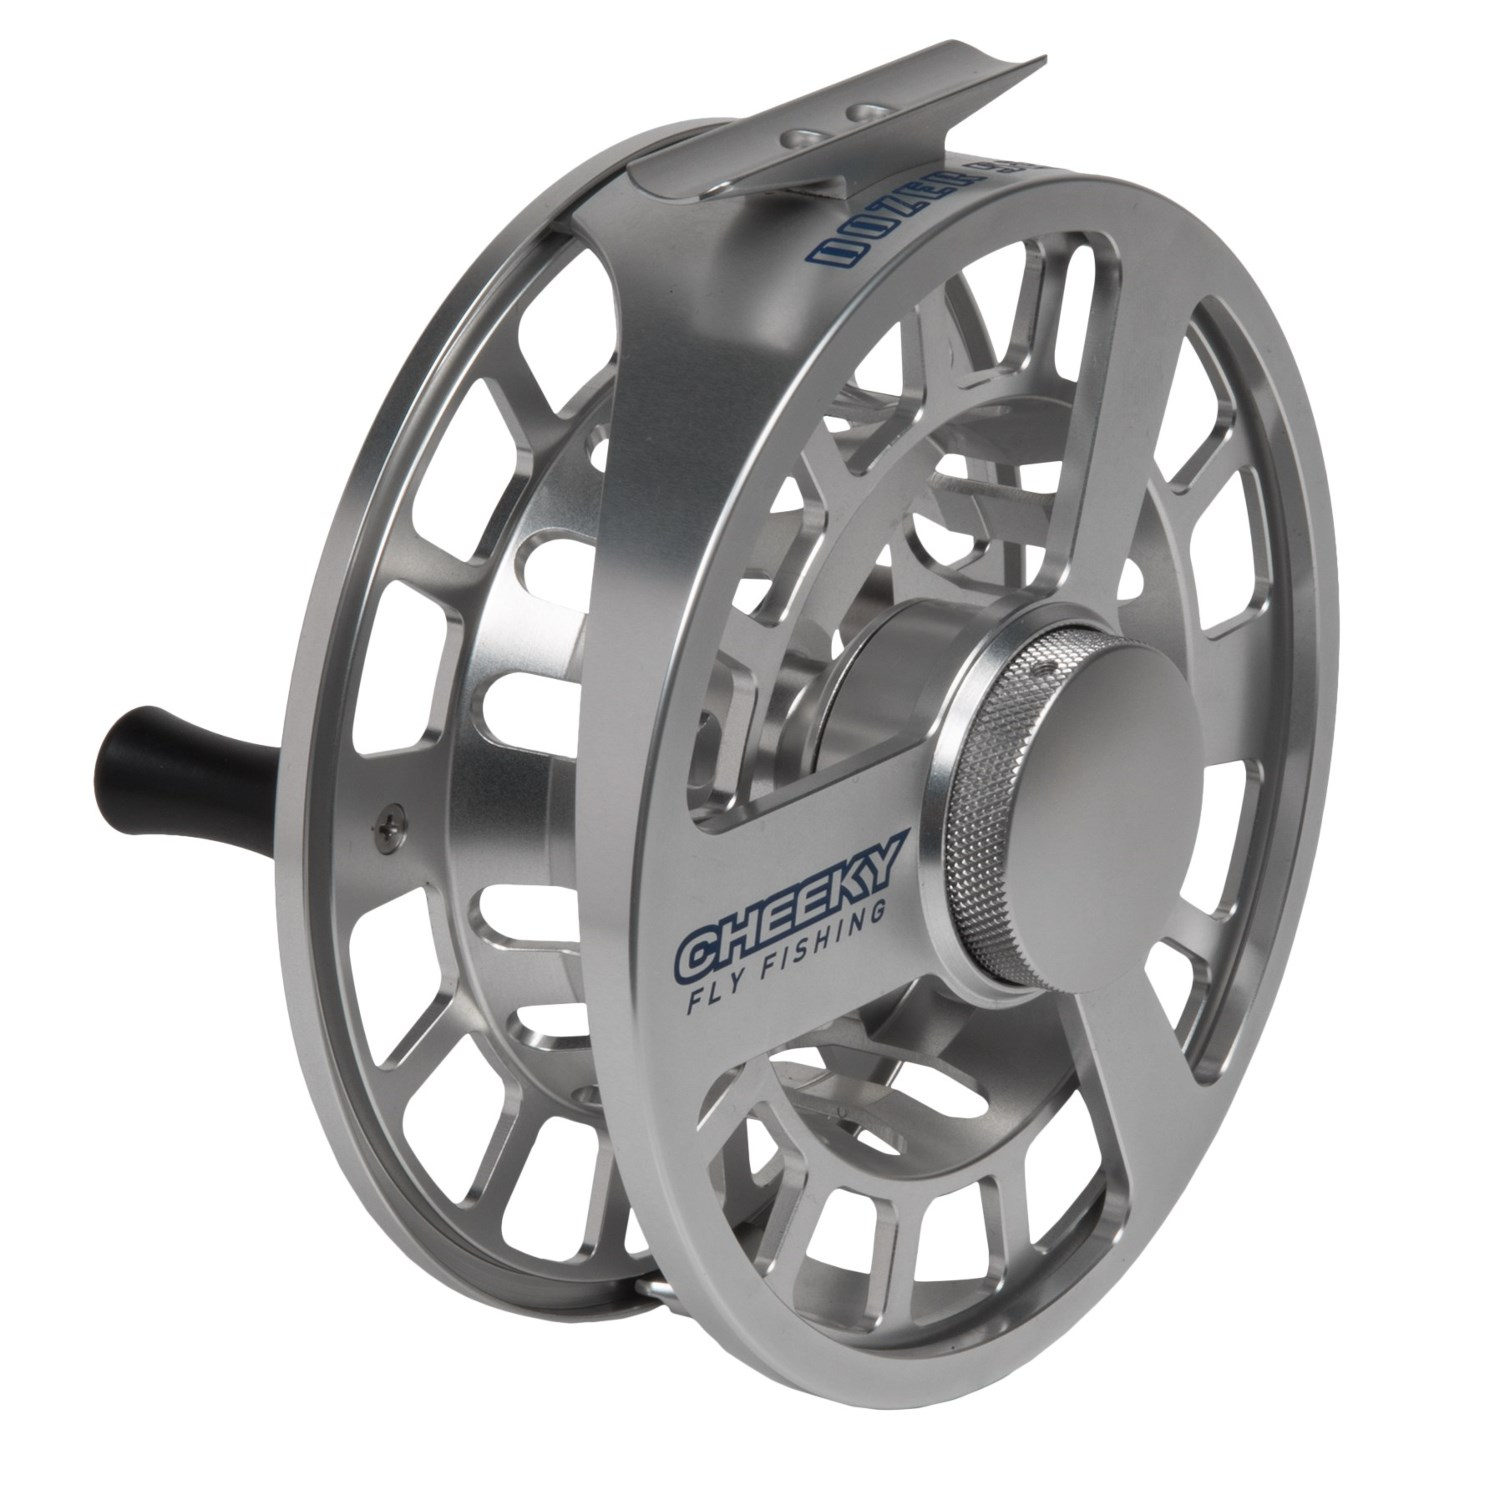 Cheeky fly fishing dozer 525 fly reel 12 16wt save 50 for Cheeky fly fishing